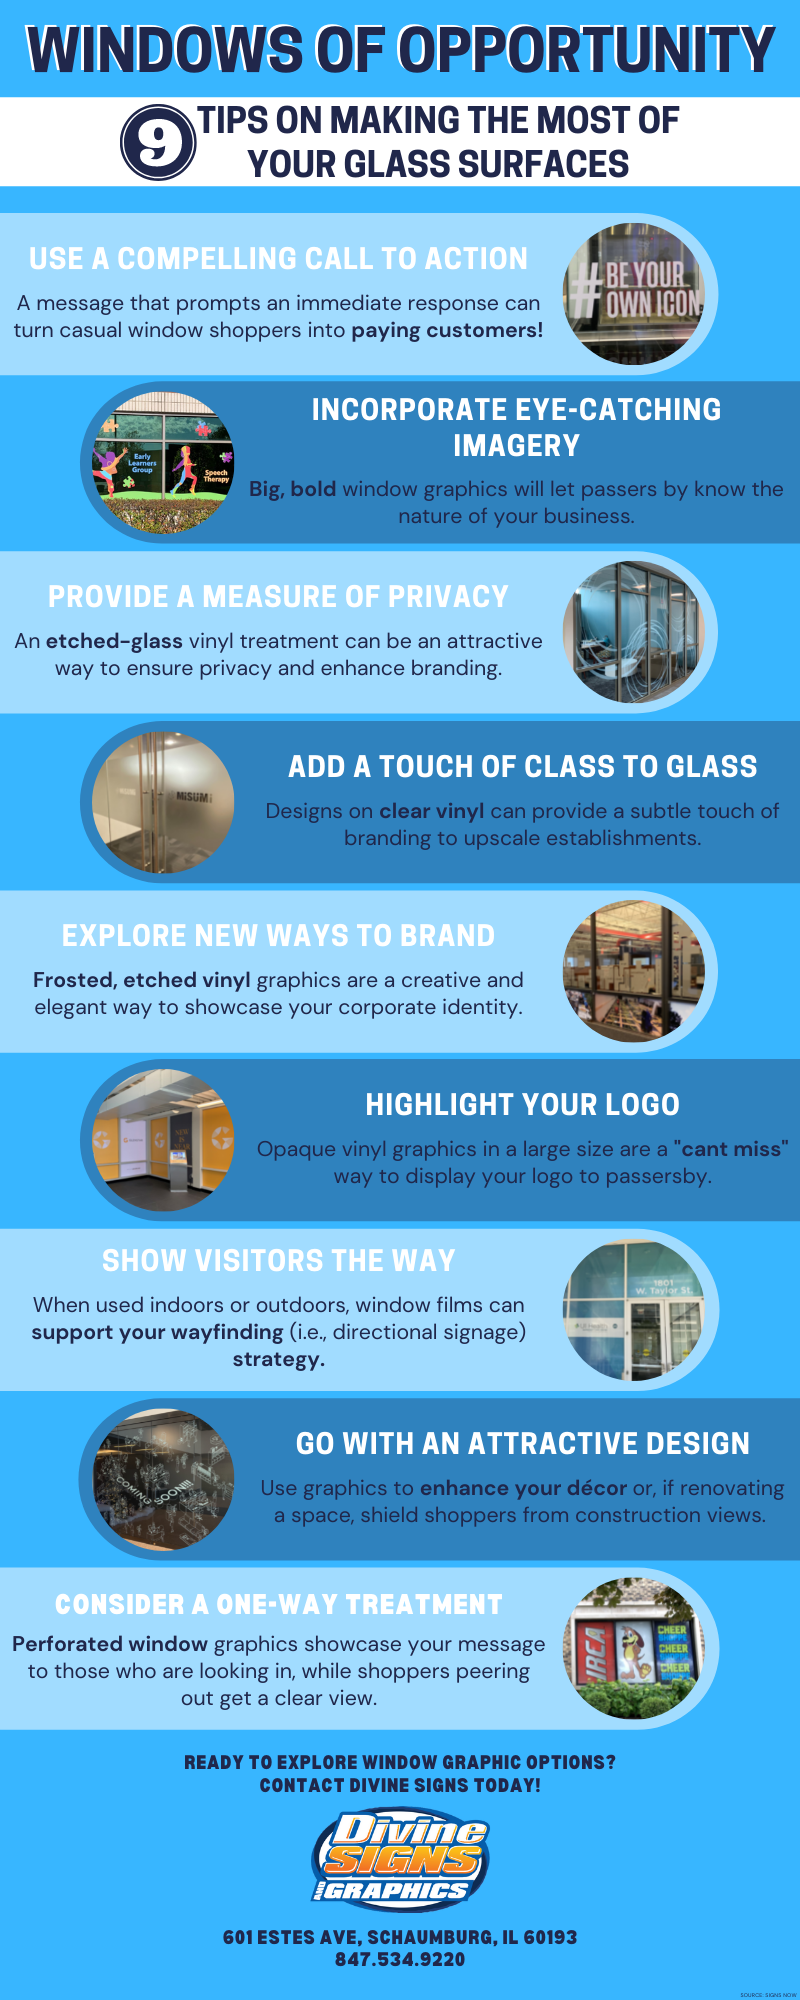 Tips for Branding Your Window Graphics